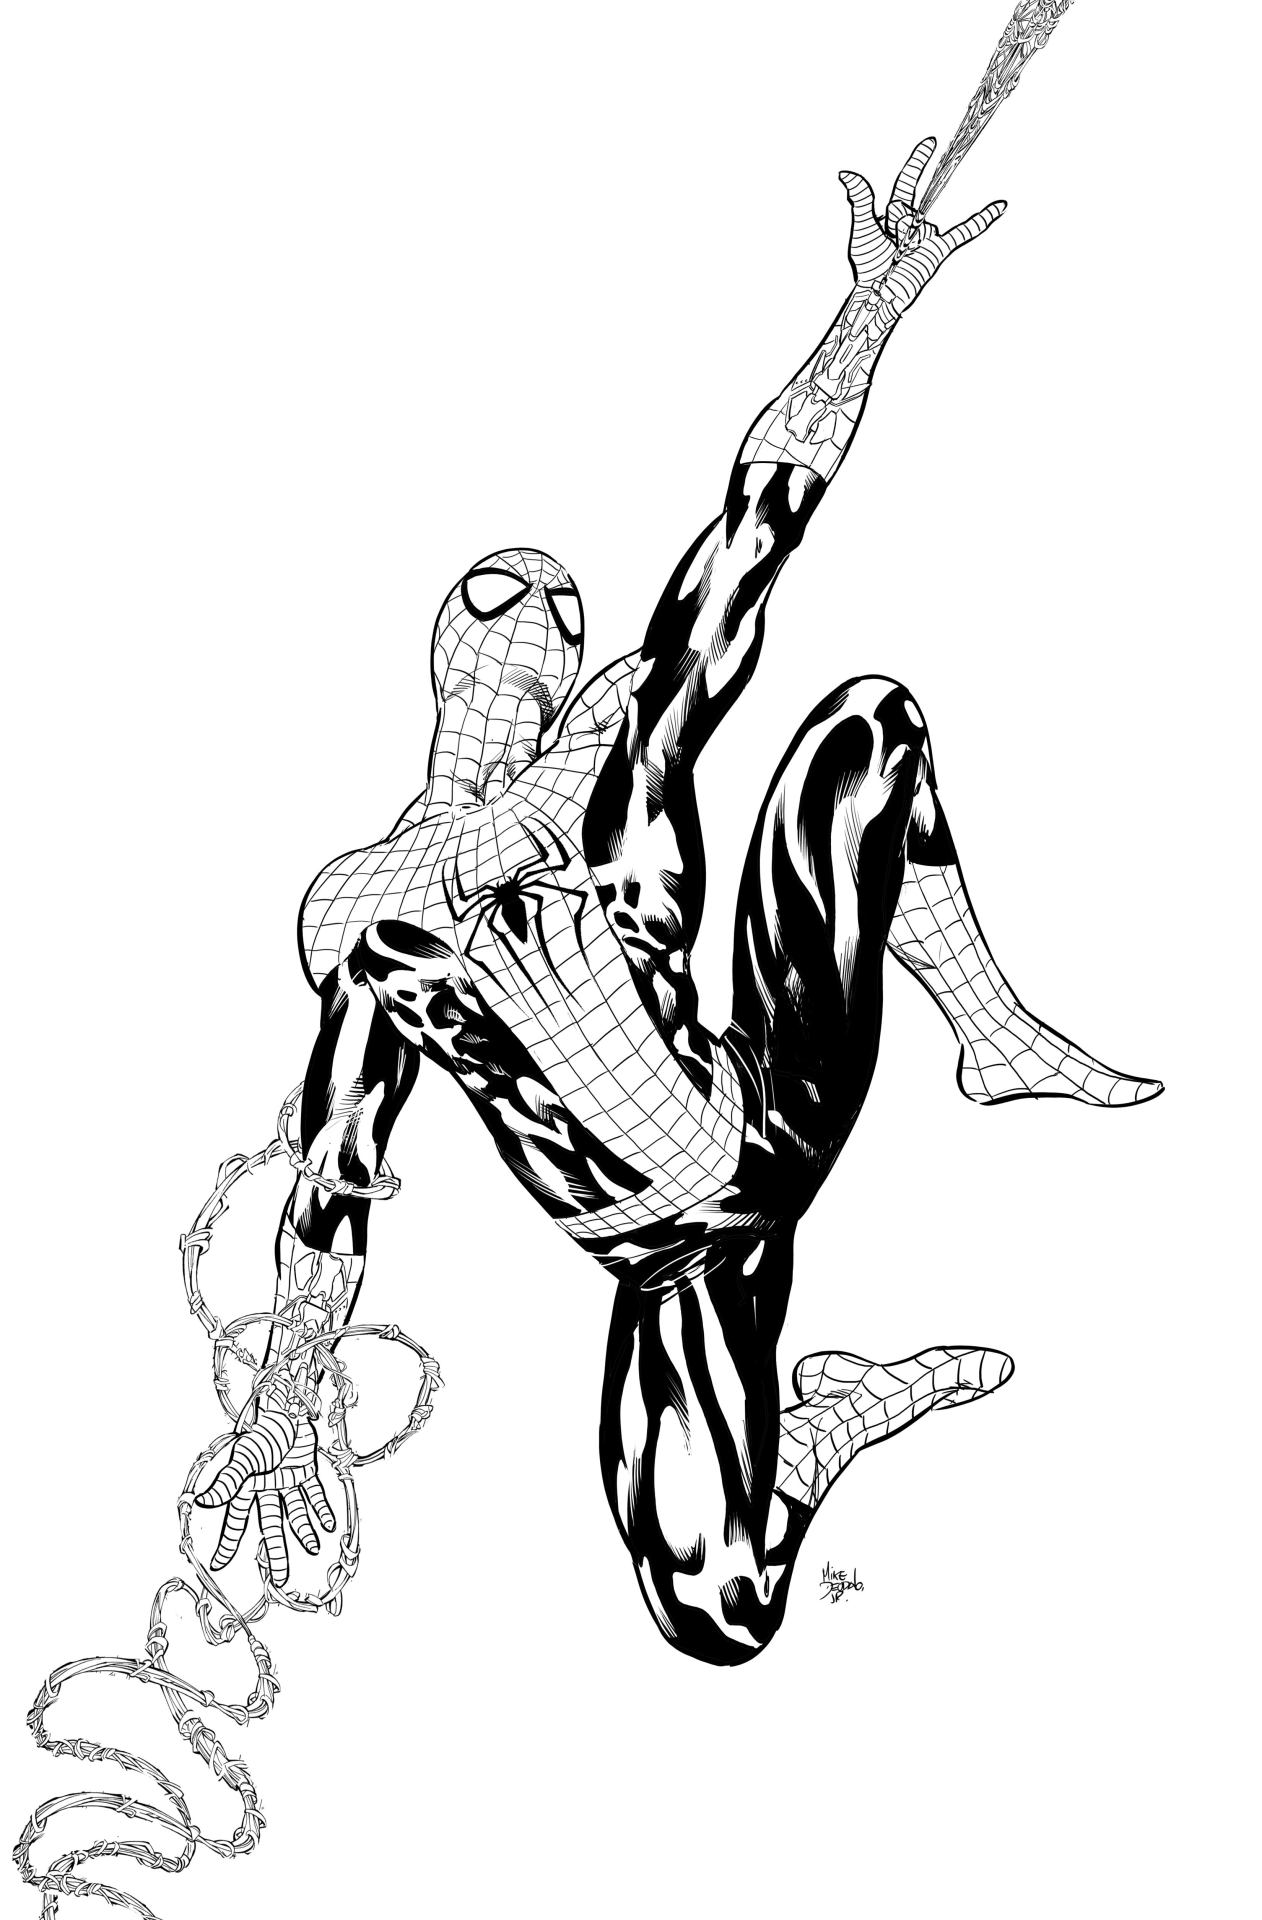 Preview THE AMAZING SPIDER-MAN 2's Style Guide With The